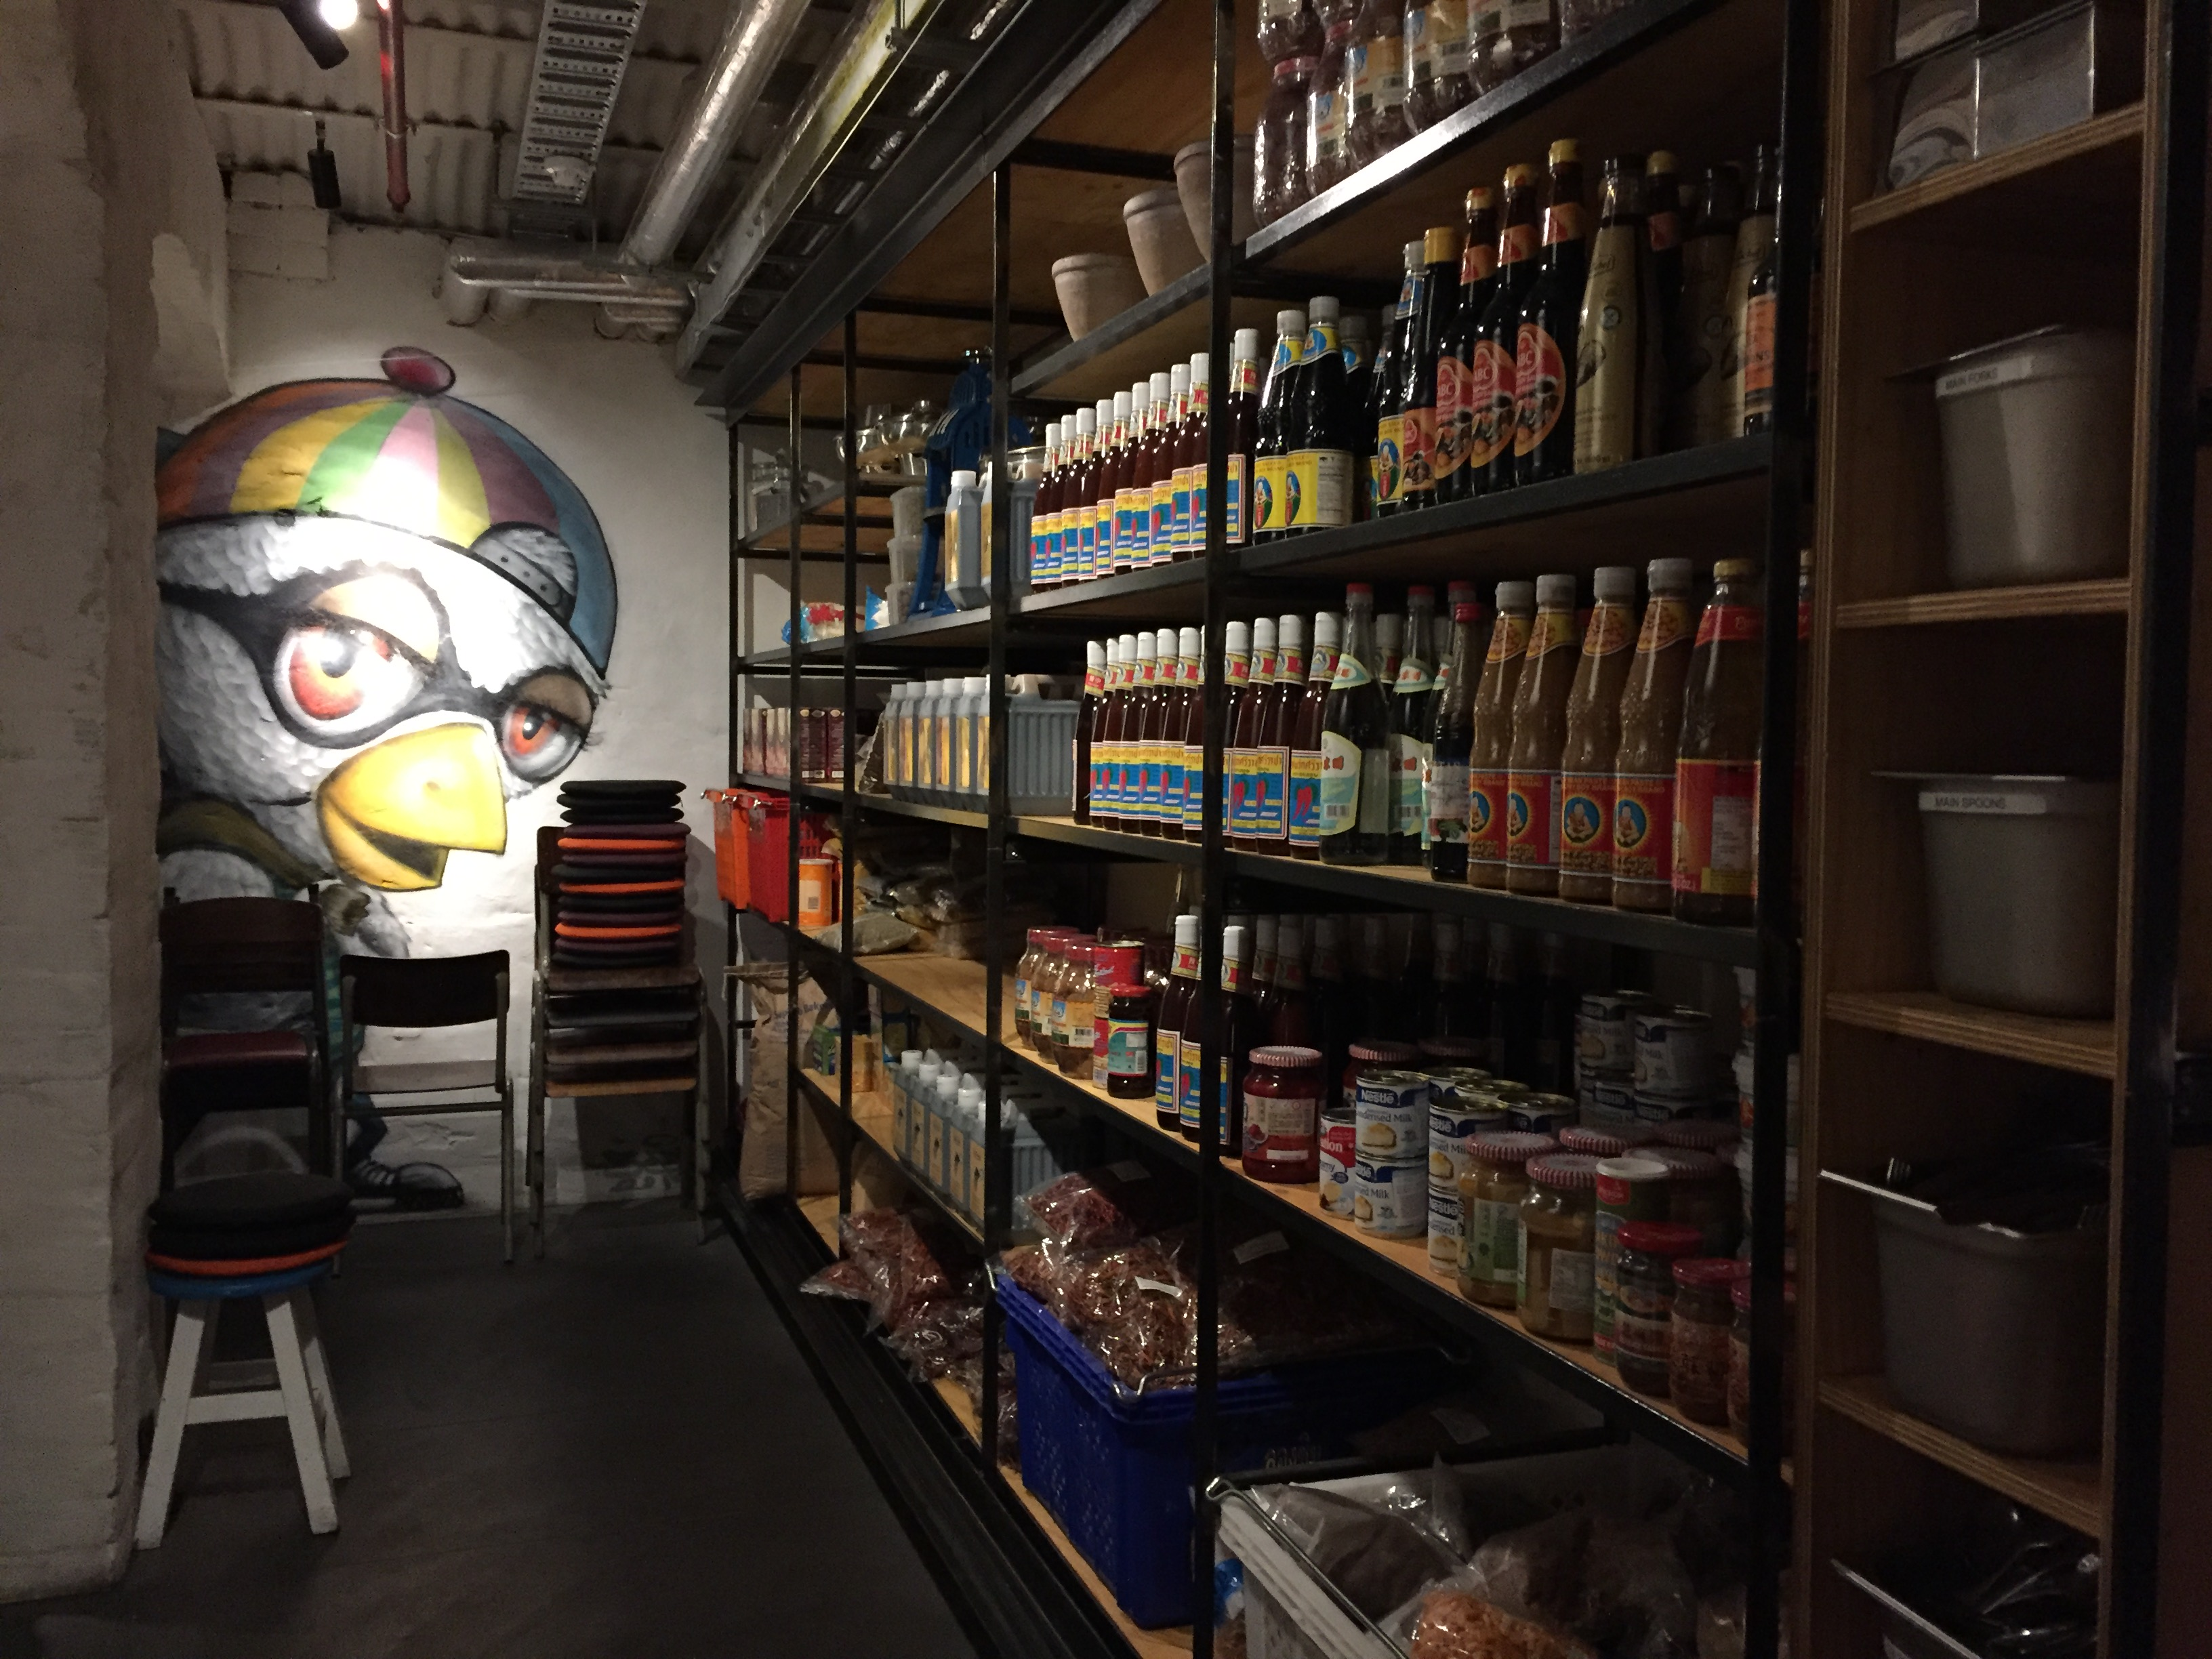 Sauce storage area with duck painting on wall at Longchim Restaurant in Perth